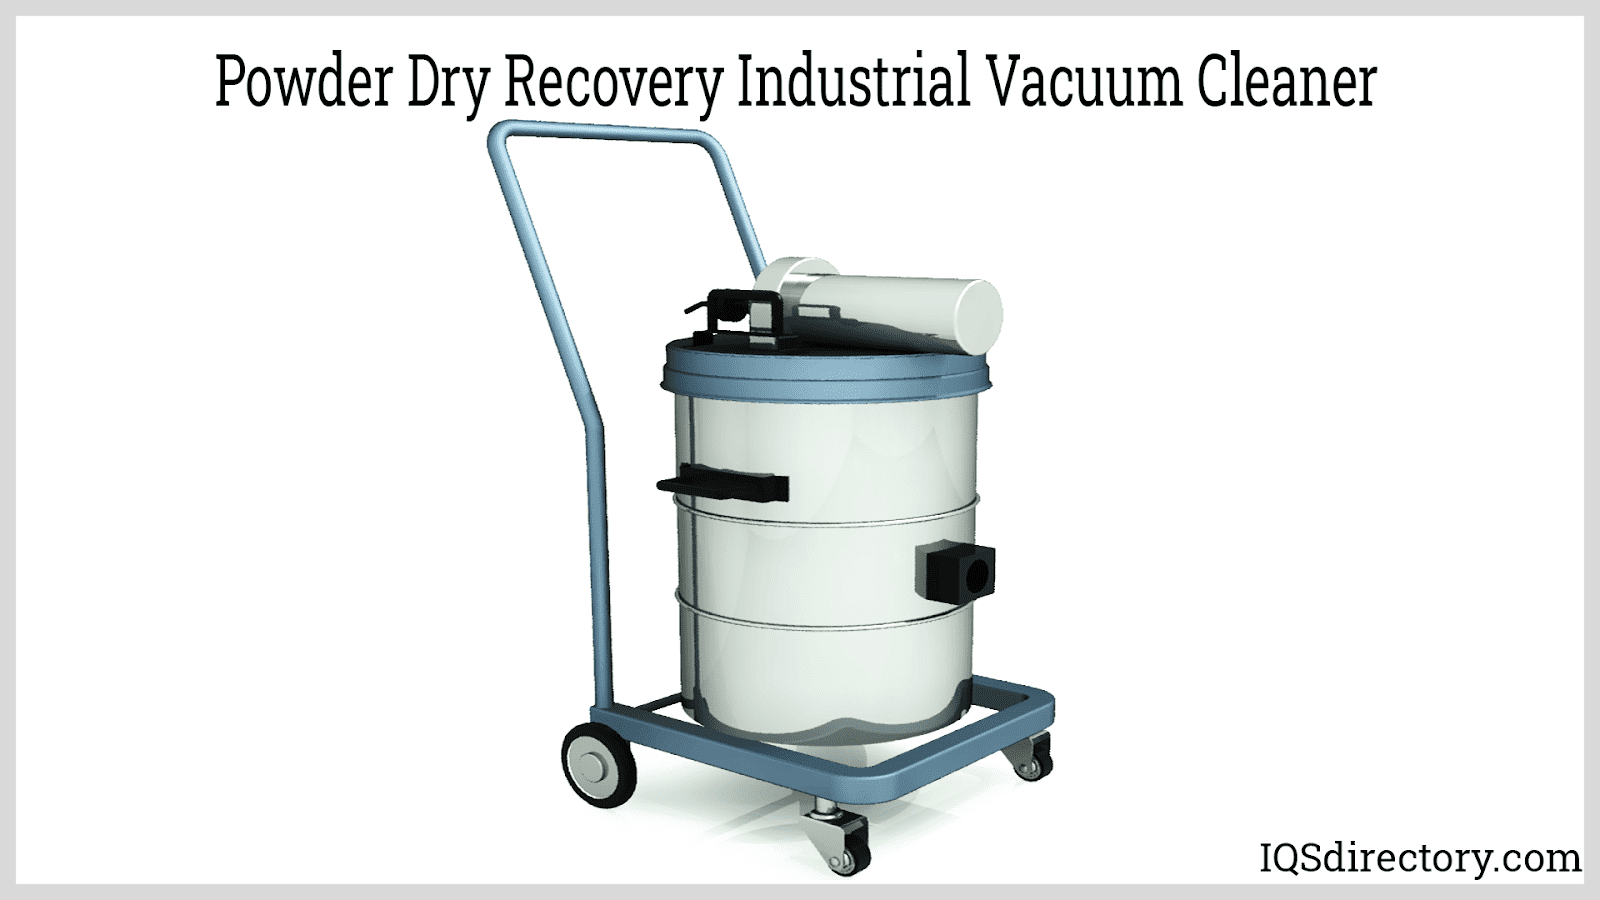 Powder Dry Recovery Industrial Vacuum Cleaner